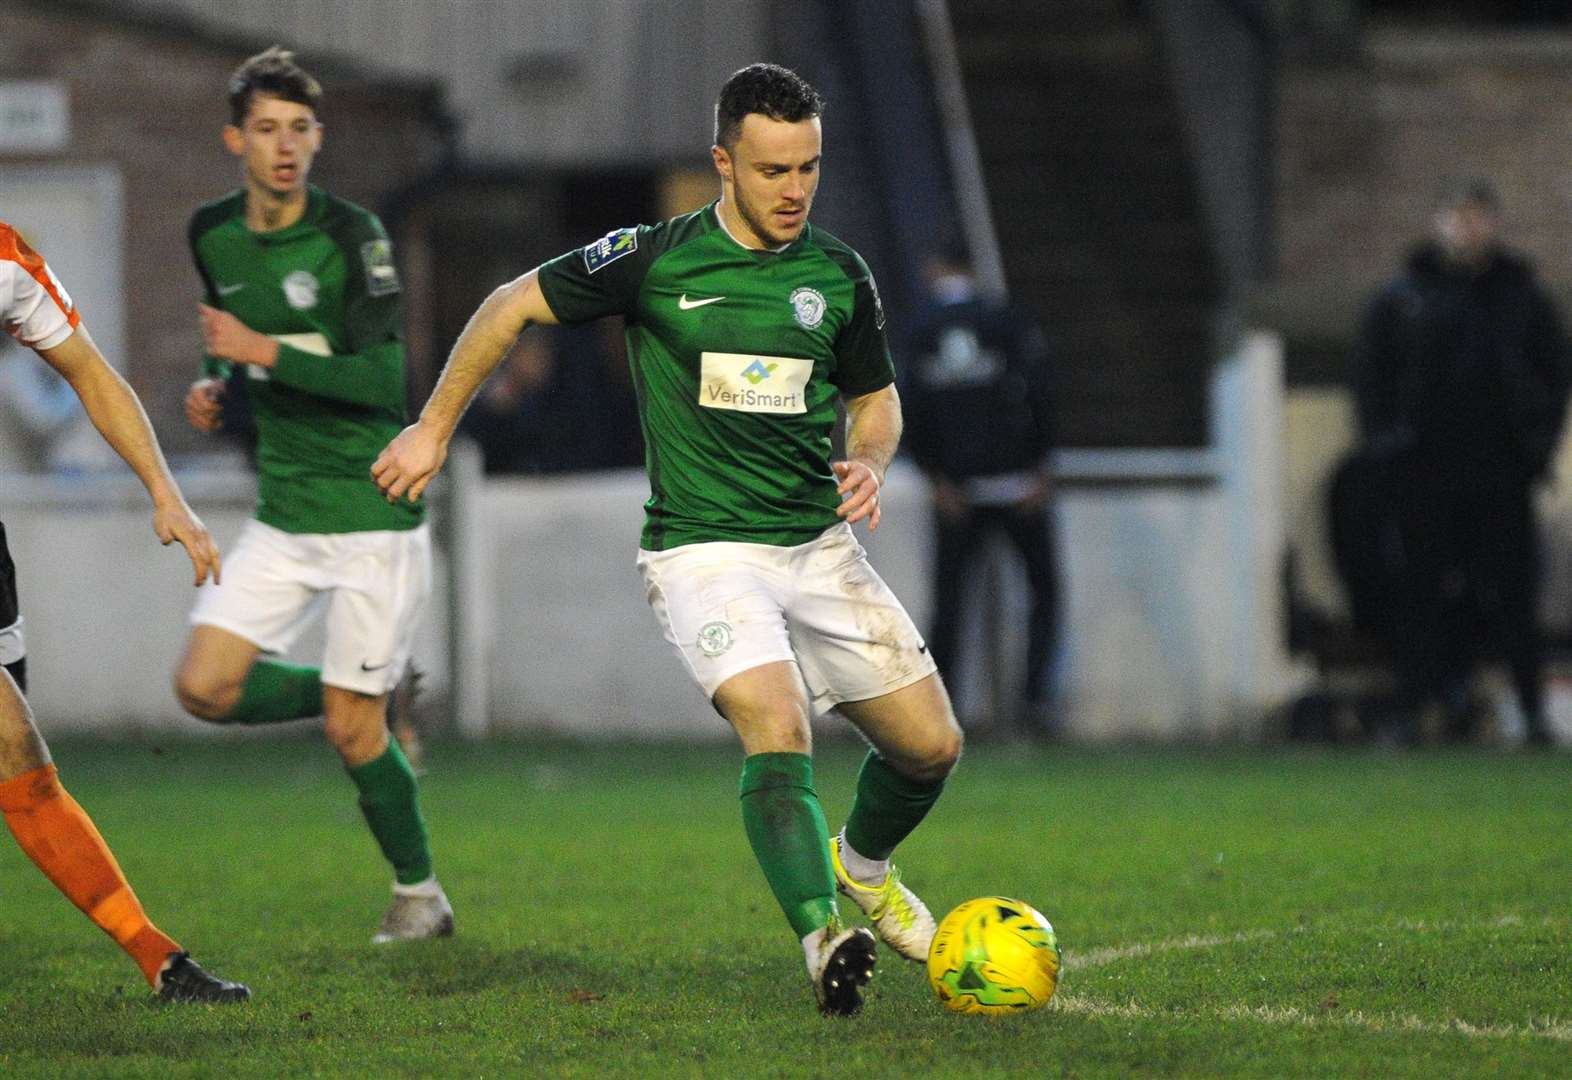 BOSTIK LEAGUE: Soham Town Rangers secure signature of top-scorer Sam Mulready